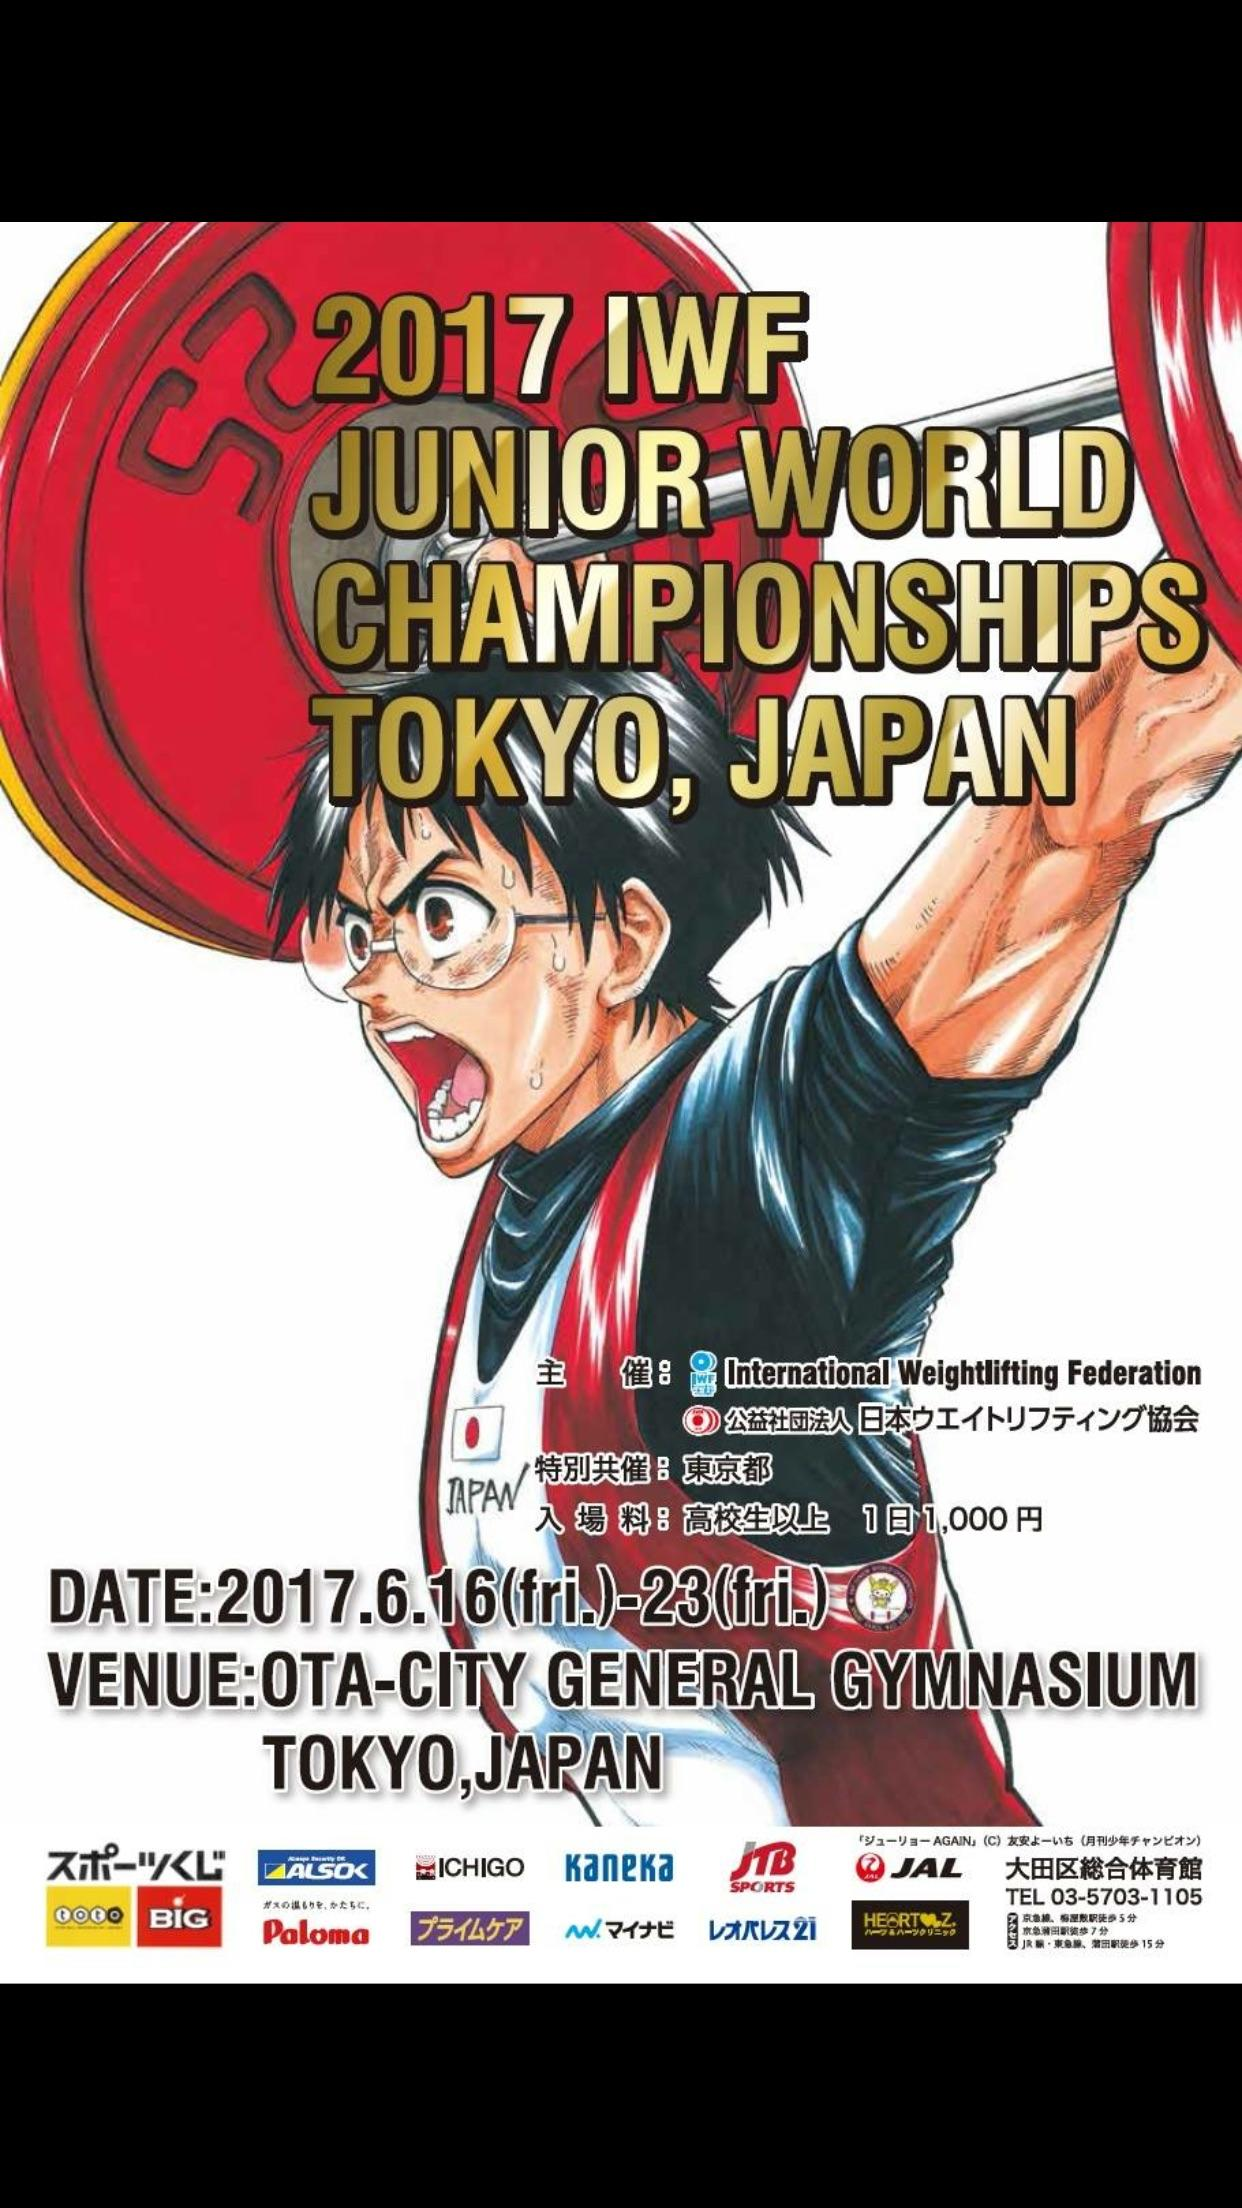 2017 junior world weightlifting world championships thenerdyweightlifter tokyo japan